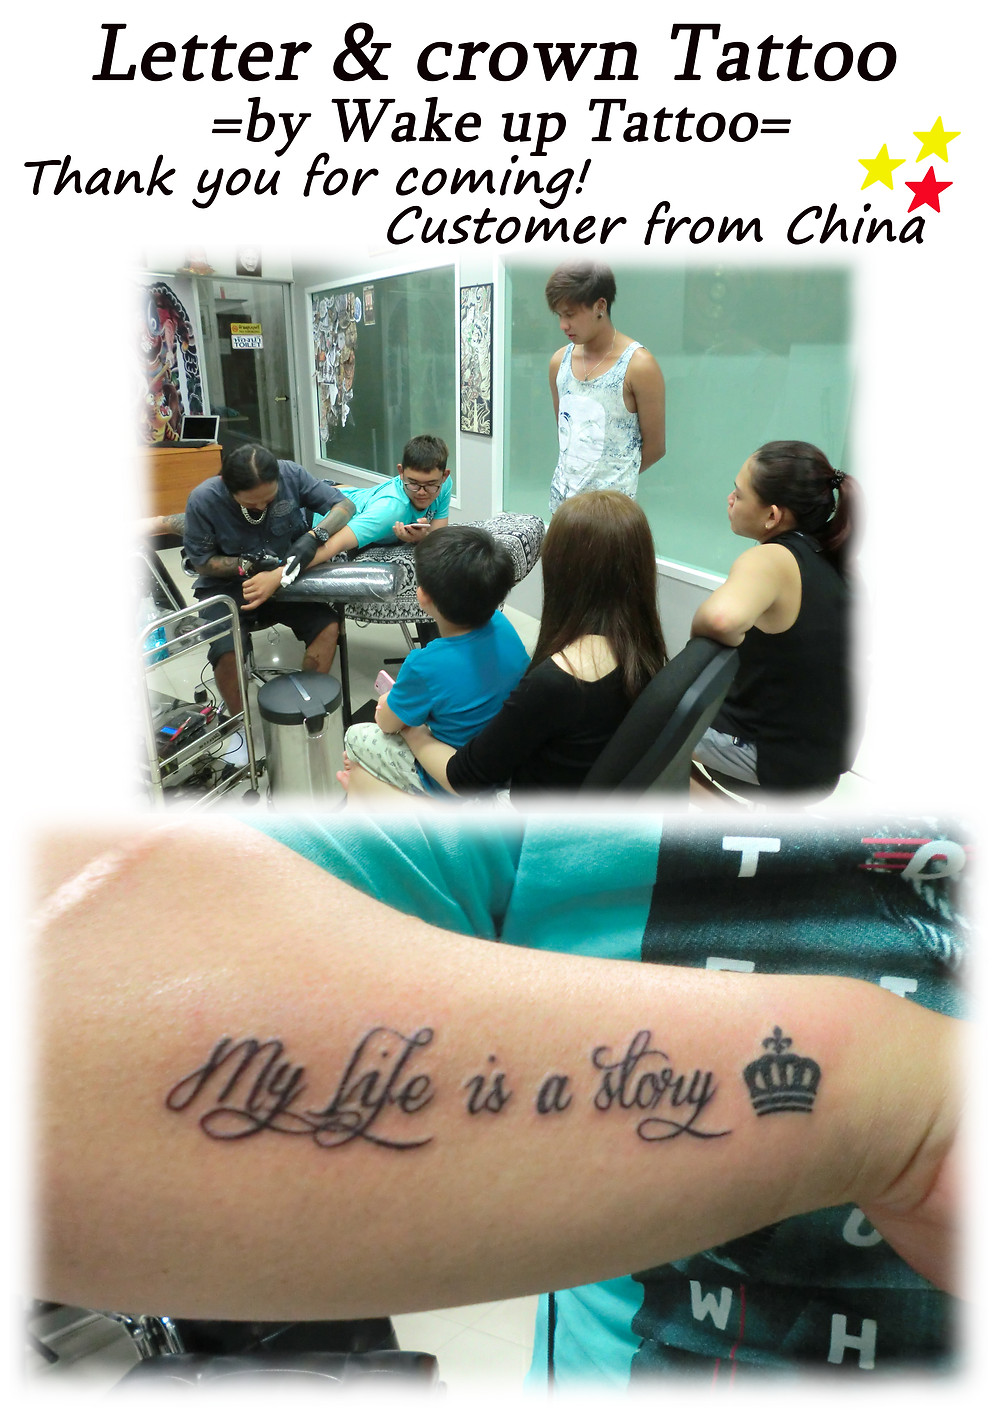 Letter & Crown Tattoo by Wake up Tattoo Phuket